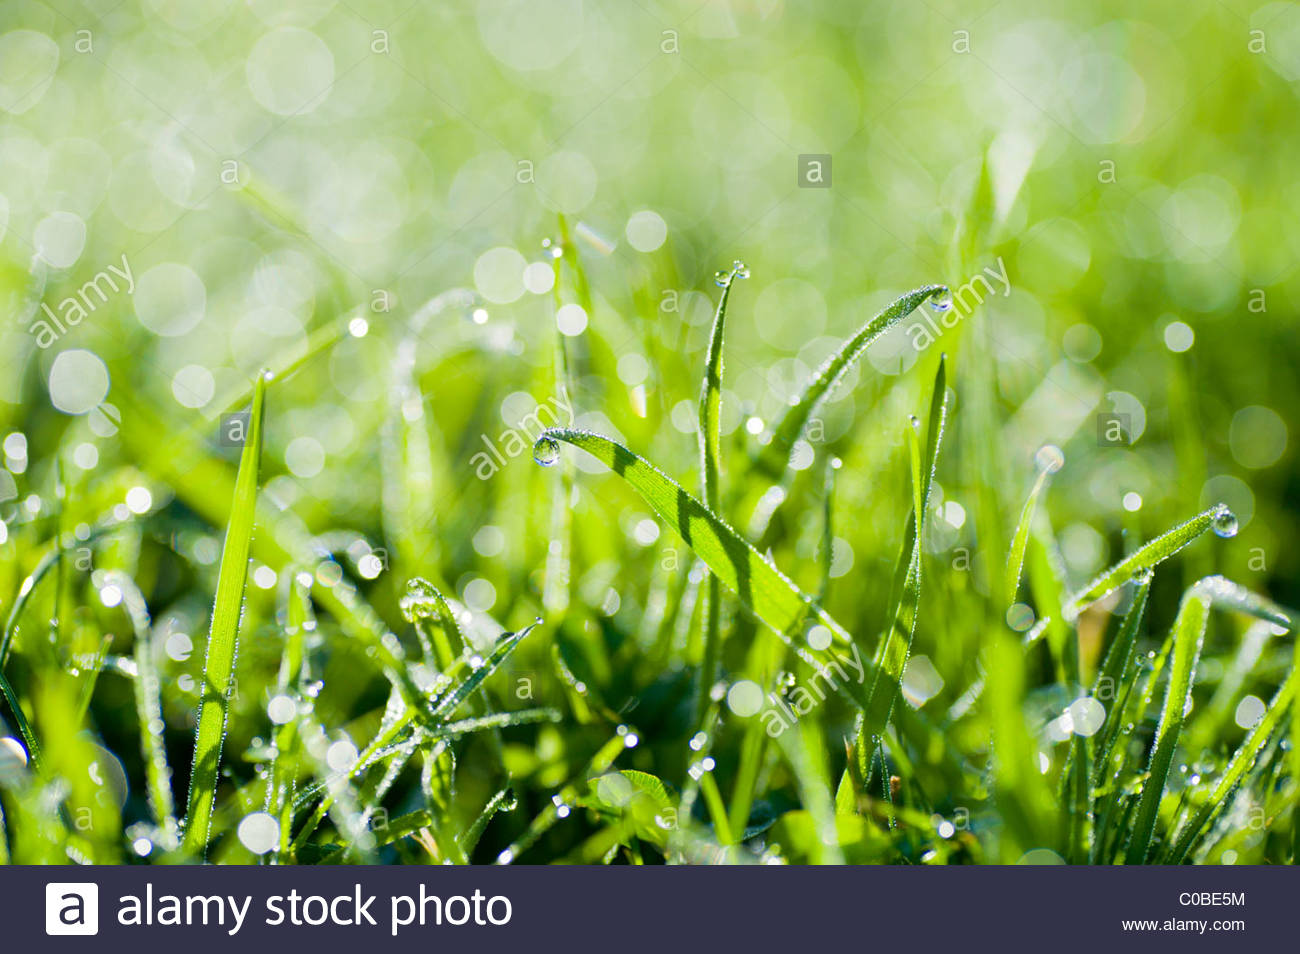 Close up of dew drops on grass. - Stock Image